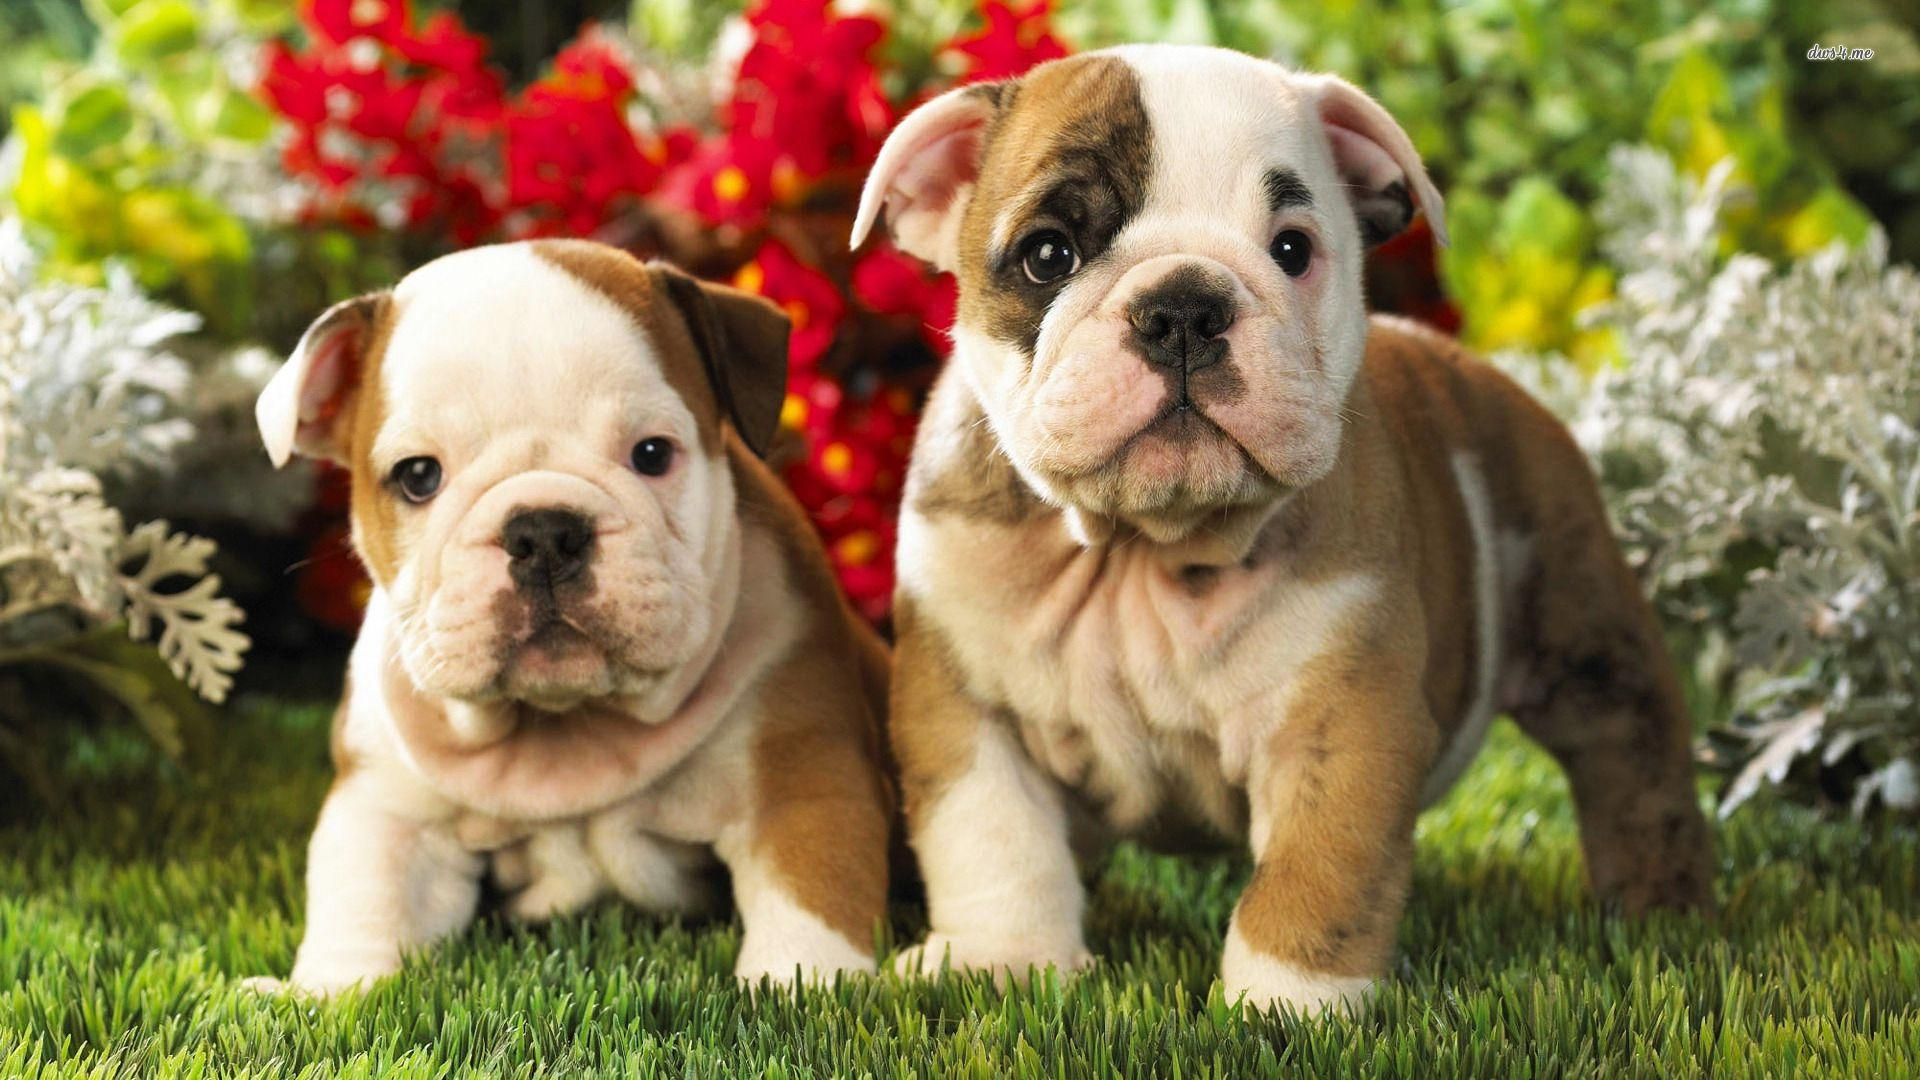 Puppies Themes Dogs Wallpapers HD New Tab Free Addons